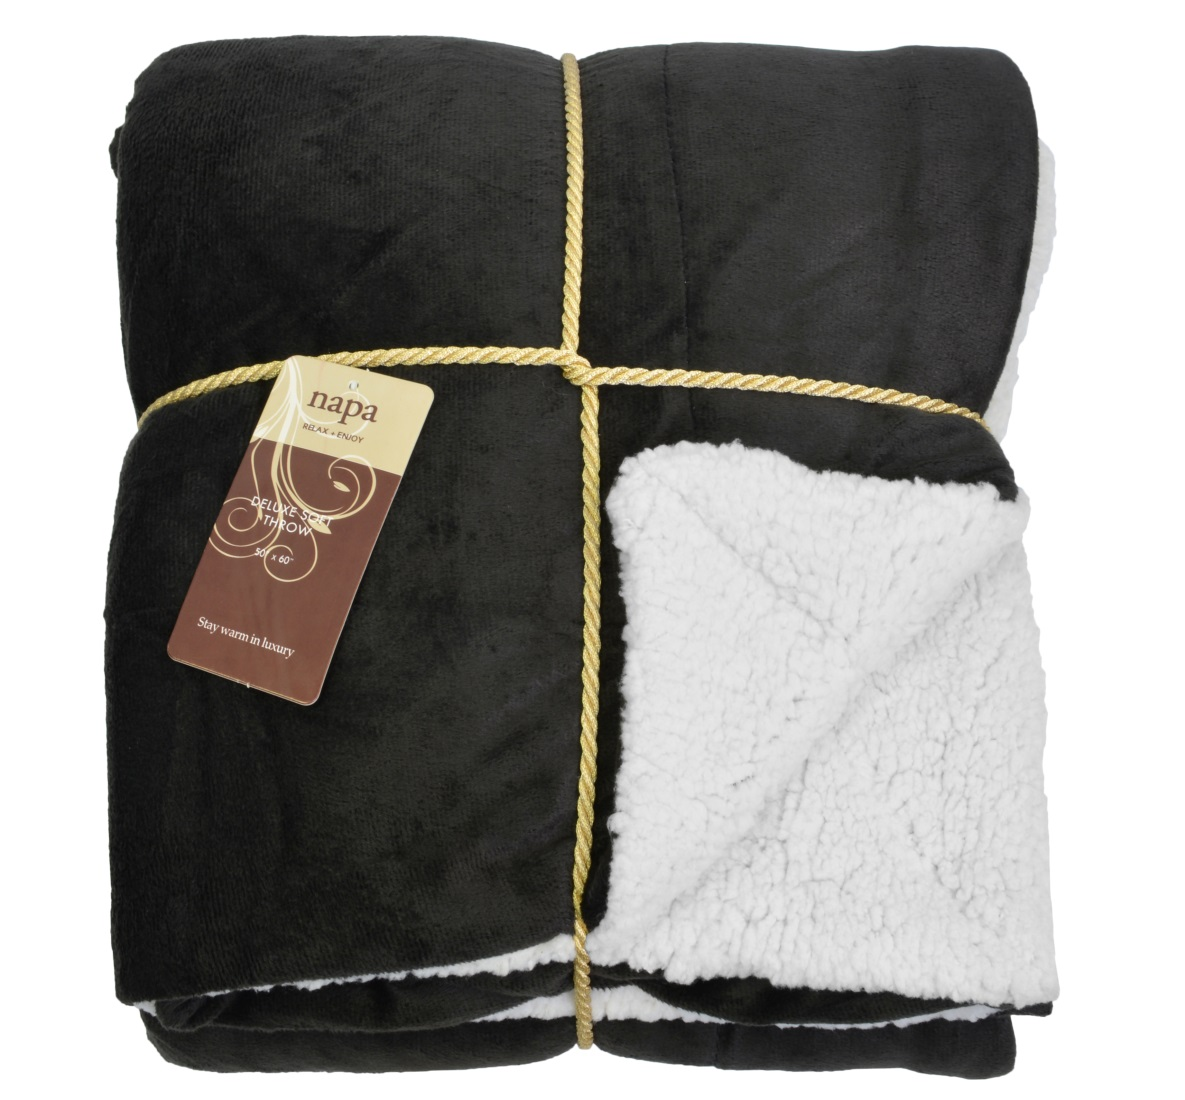 "Napa Super Soft Micro Mink Fleece Sherpa Bed Throw TV Blanket 50"" x 60"" Reversible"